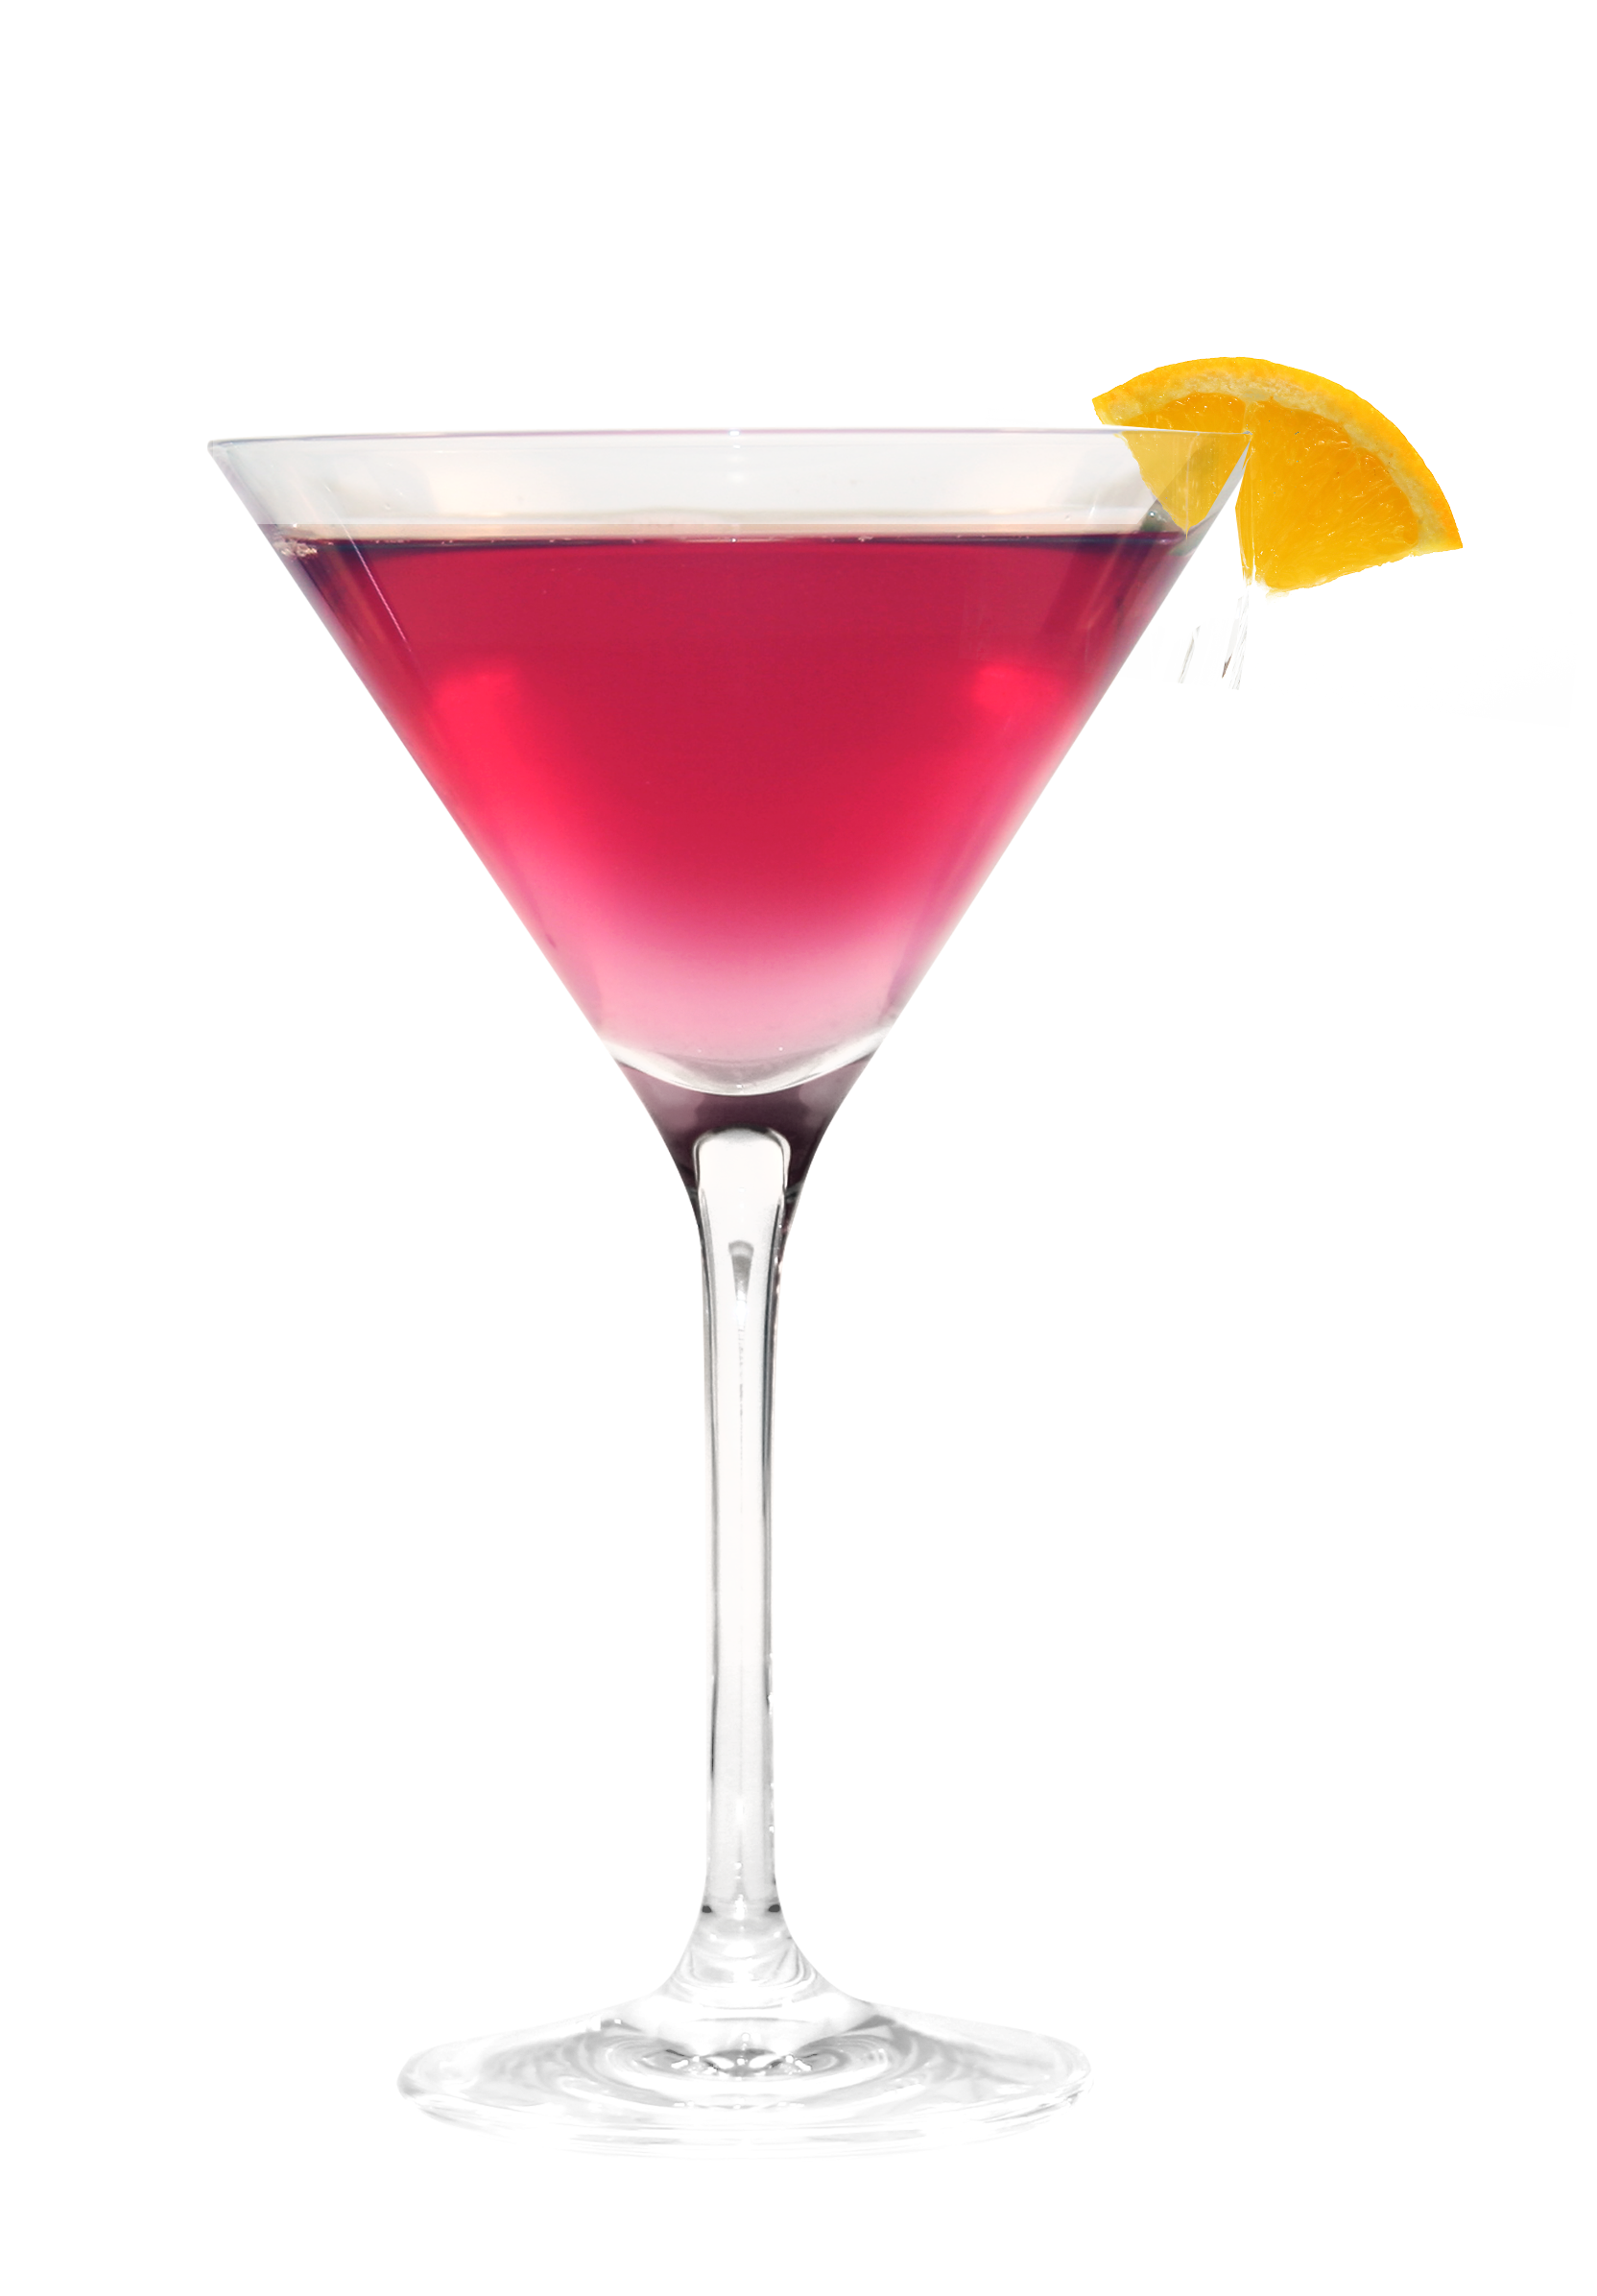 Cocktails Clipart Manhattan Cocktail Cocktails Manhattan Cocktail Transparent Free For Download On Webstockreview 2021